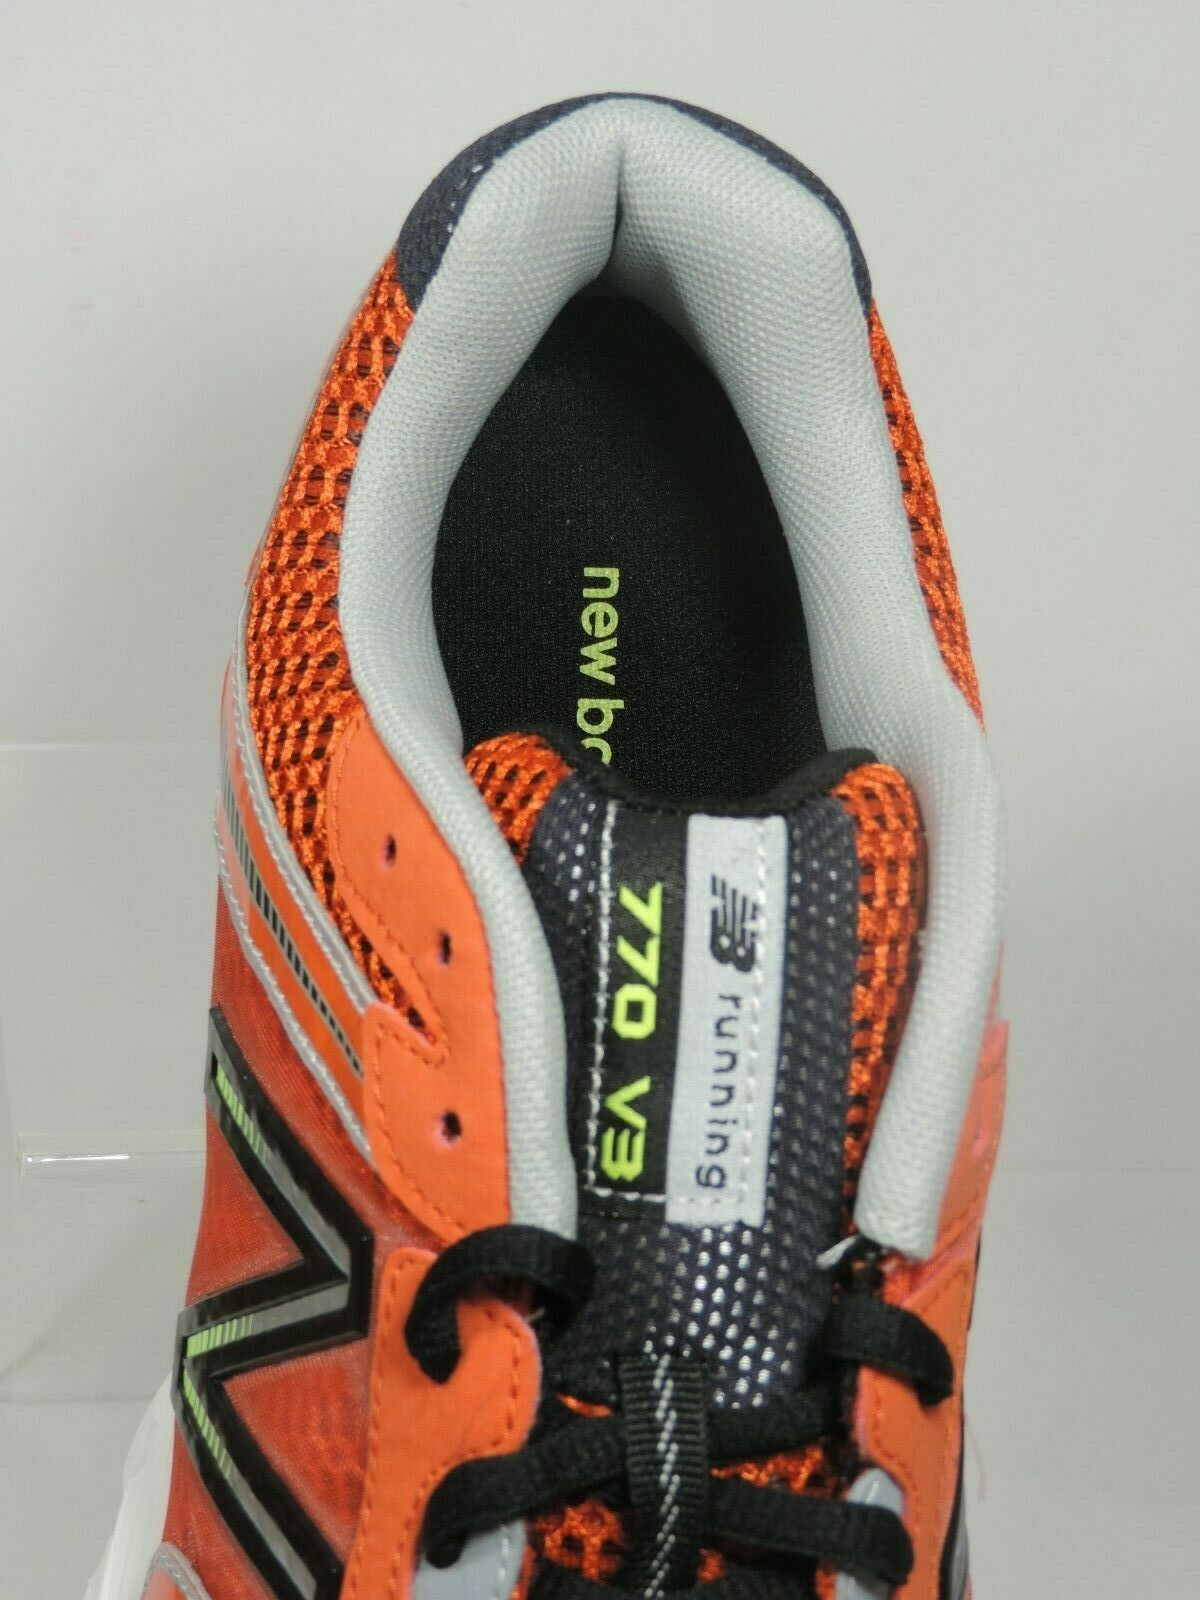 New Balance Men's Shoes M770CT3 Athletic Running Sneakers Red Black Mesh image 3